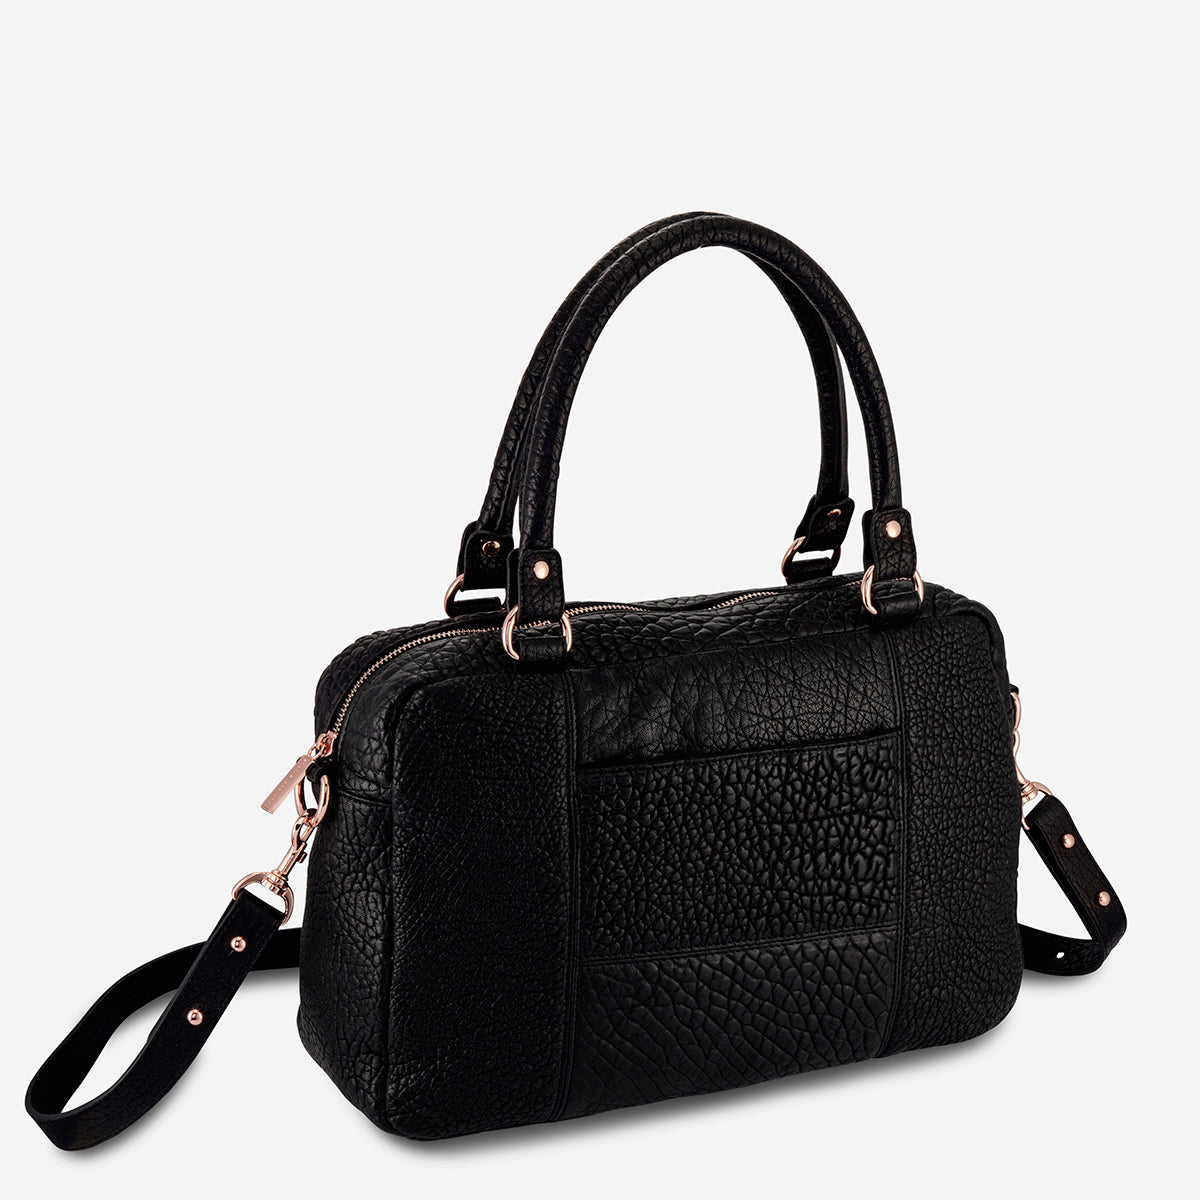 Status Anxiety War With Obvious Women's Leather Bag - Black Bubble